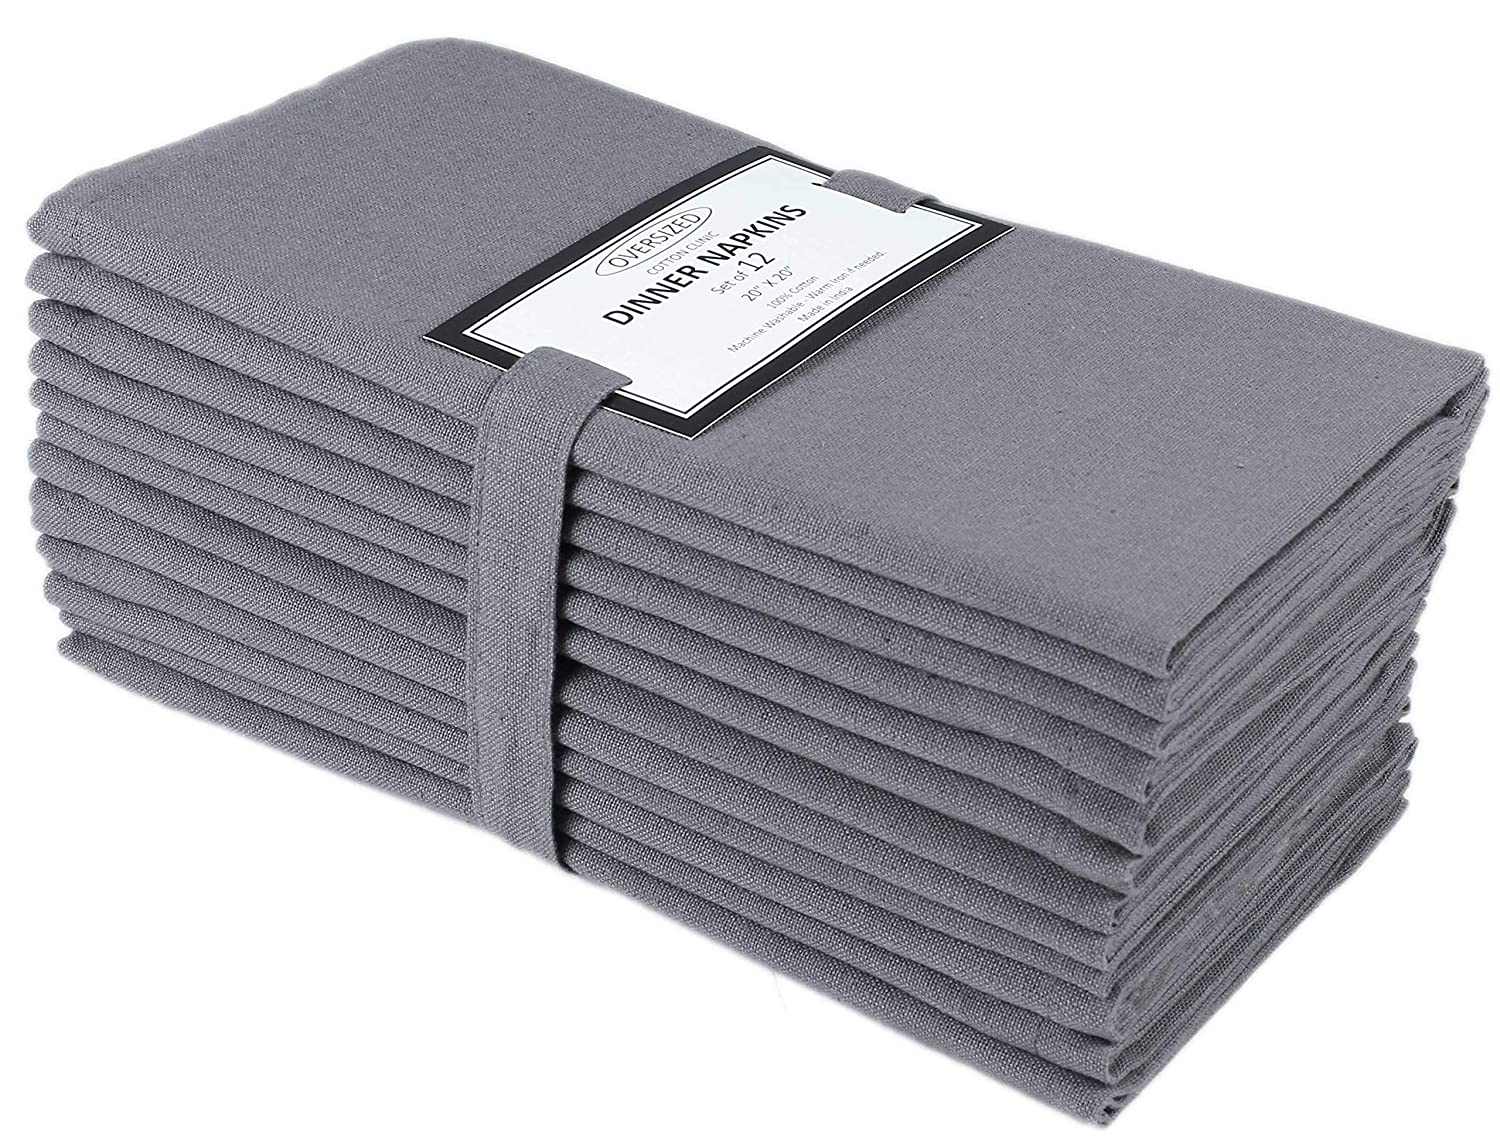 Cloth Napkin in Solid Cotton Fabric- Charcoal Color, Oversized 20x20, Wedding Napkins,Cocktails Napkins,Tailored with Mitered Corners & Generous Hem, Machine Washable Dinner Napkins Set of 12 Cotton Clinic